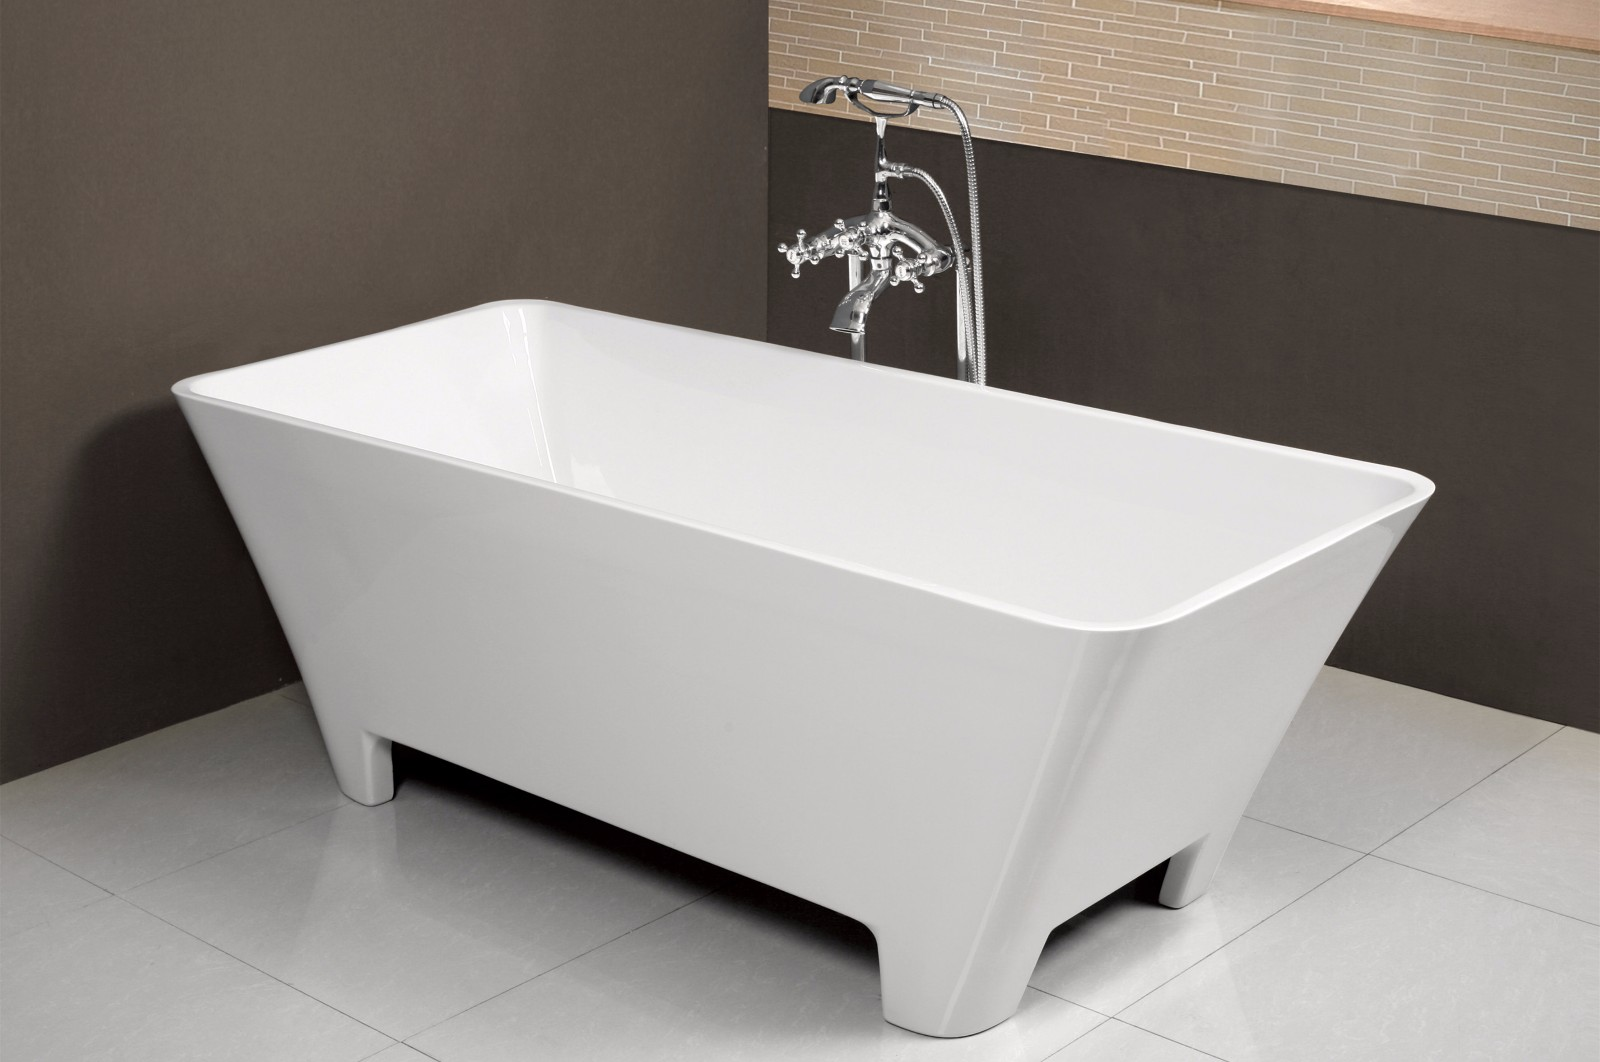 (4) MEC-3147-Acrylic Freestanding Soaking Bathtub with Foot.jpg